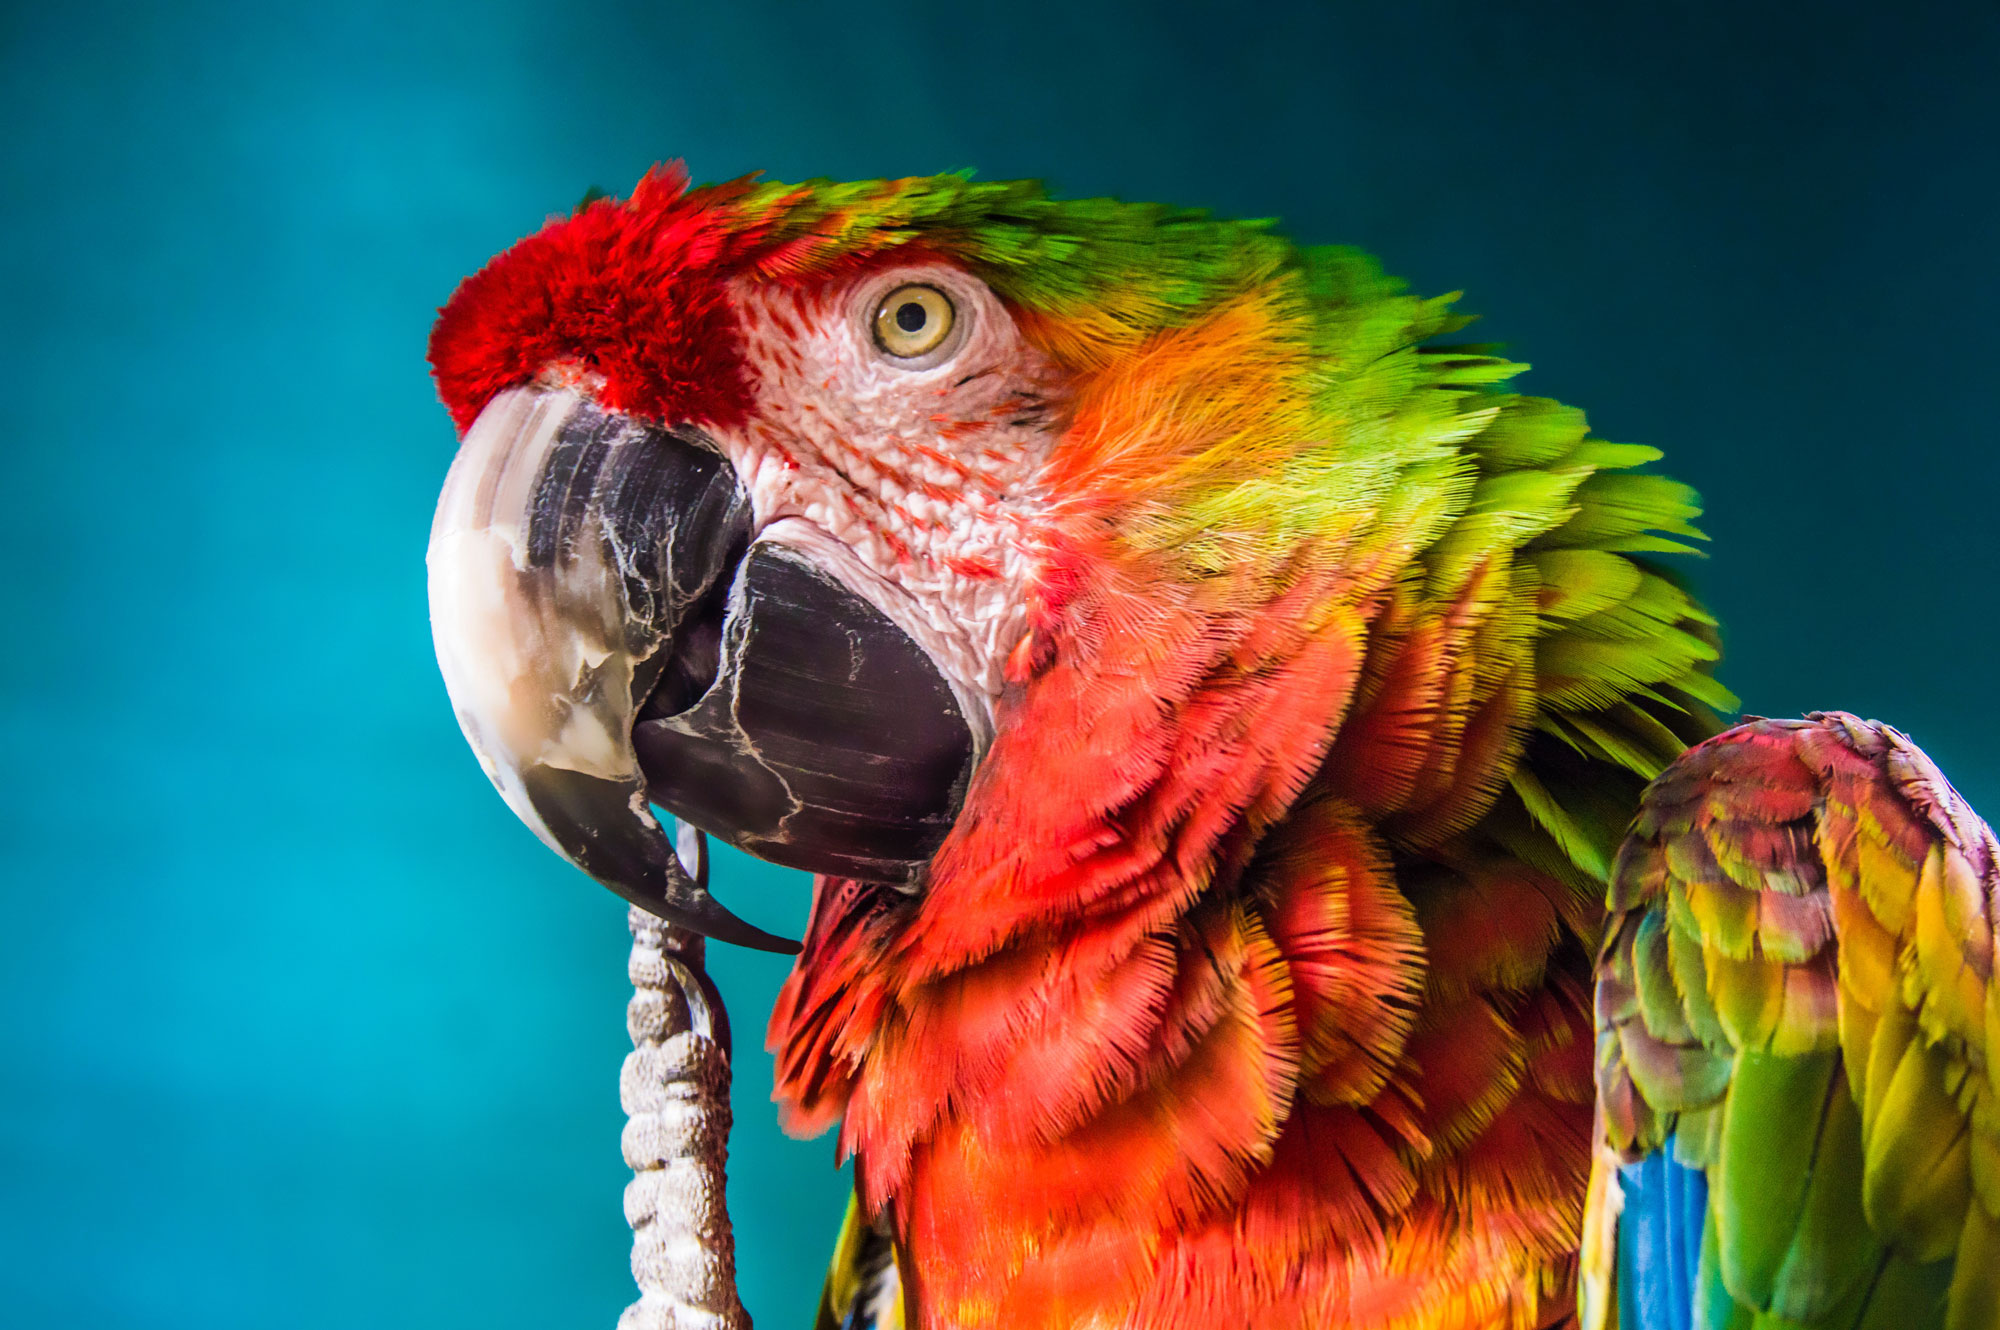 The Brave Parrot: Being Small in a Big, Troubled World